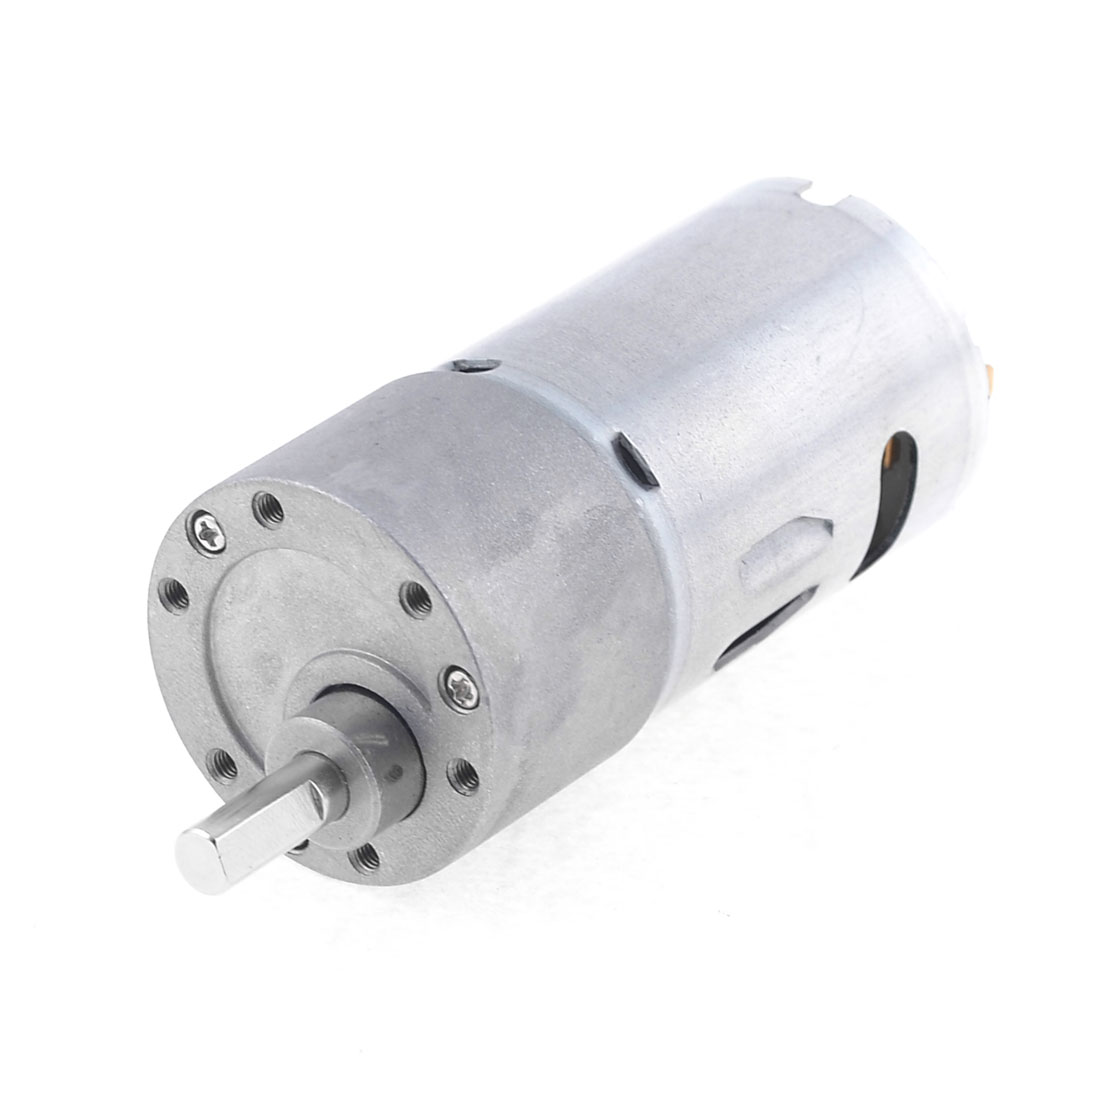 600RPM Rotate Speed High Torque Electric Geared Motor 12VDC